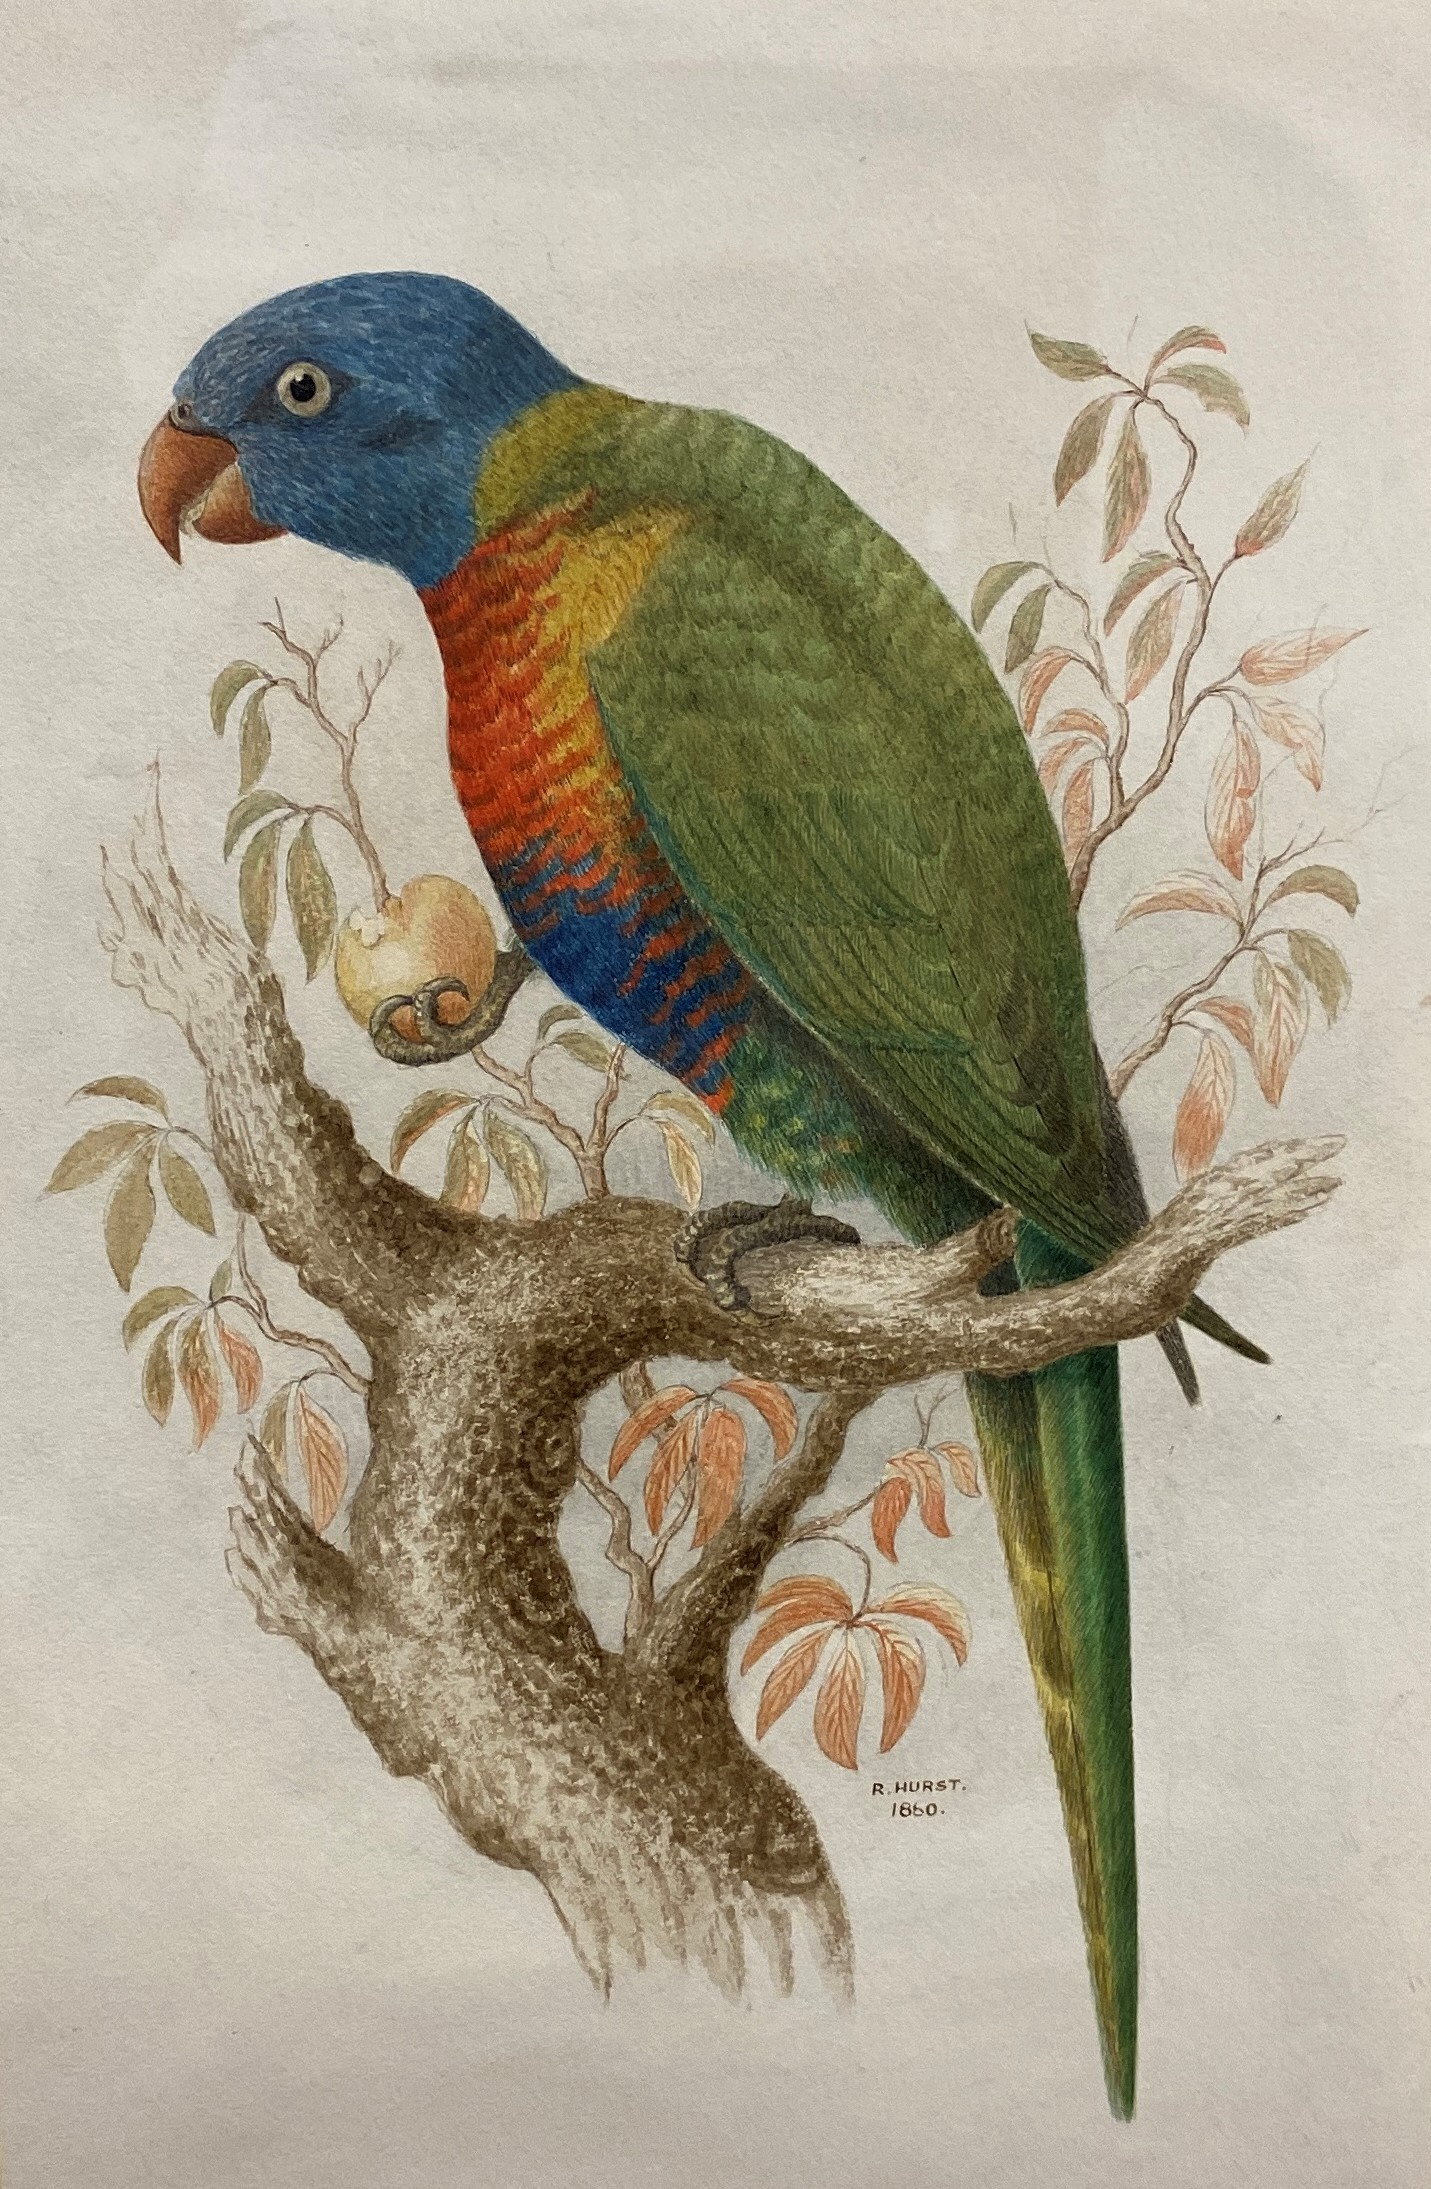 Lot 52 - Richard Hurst (Late 19th Century) 'The Blue-Bellied Lory', a study of a Rainbow Lorikeet,